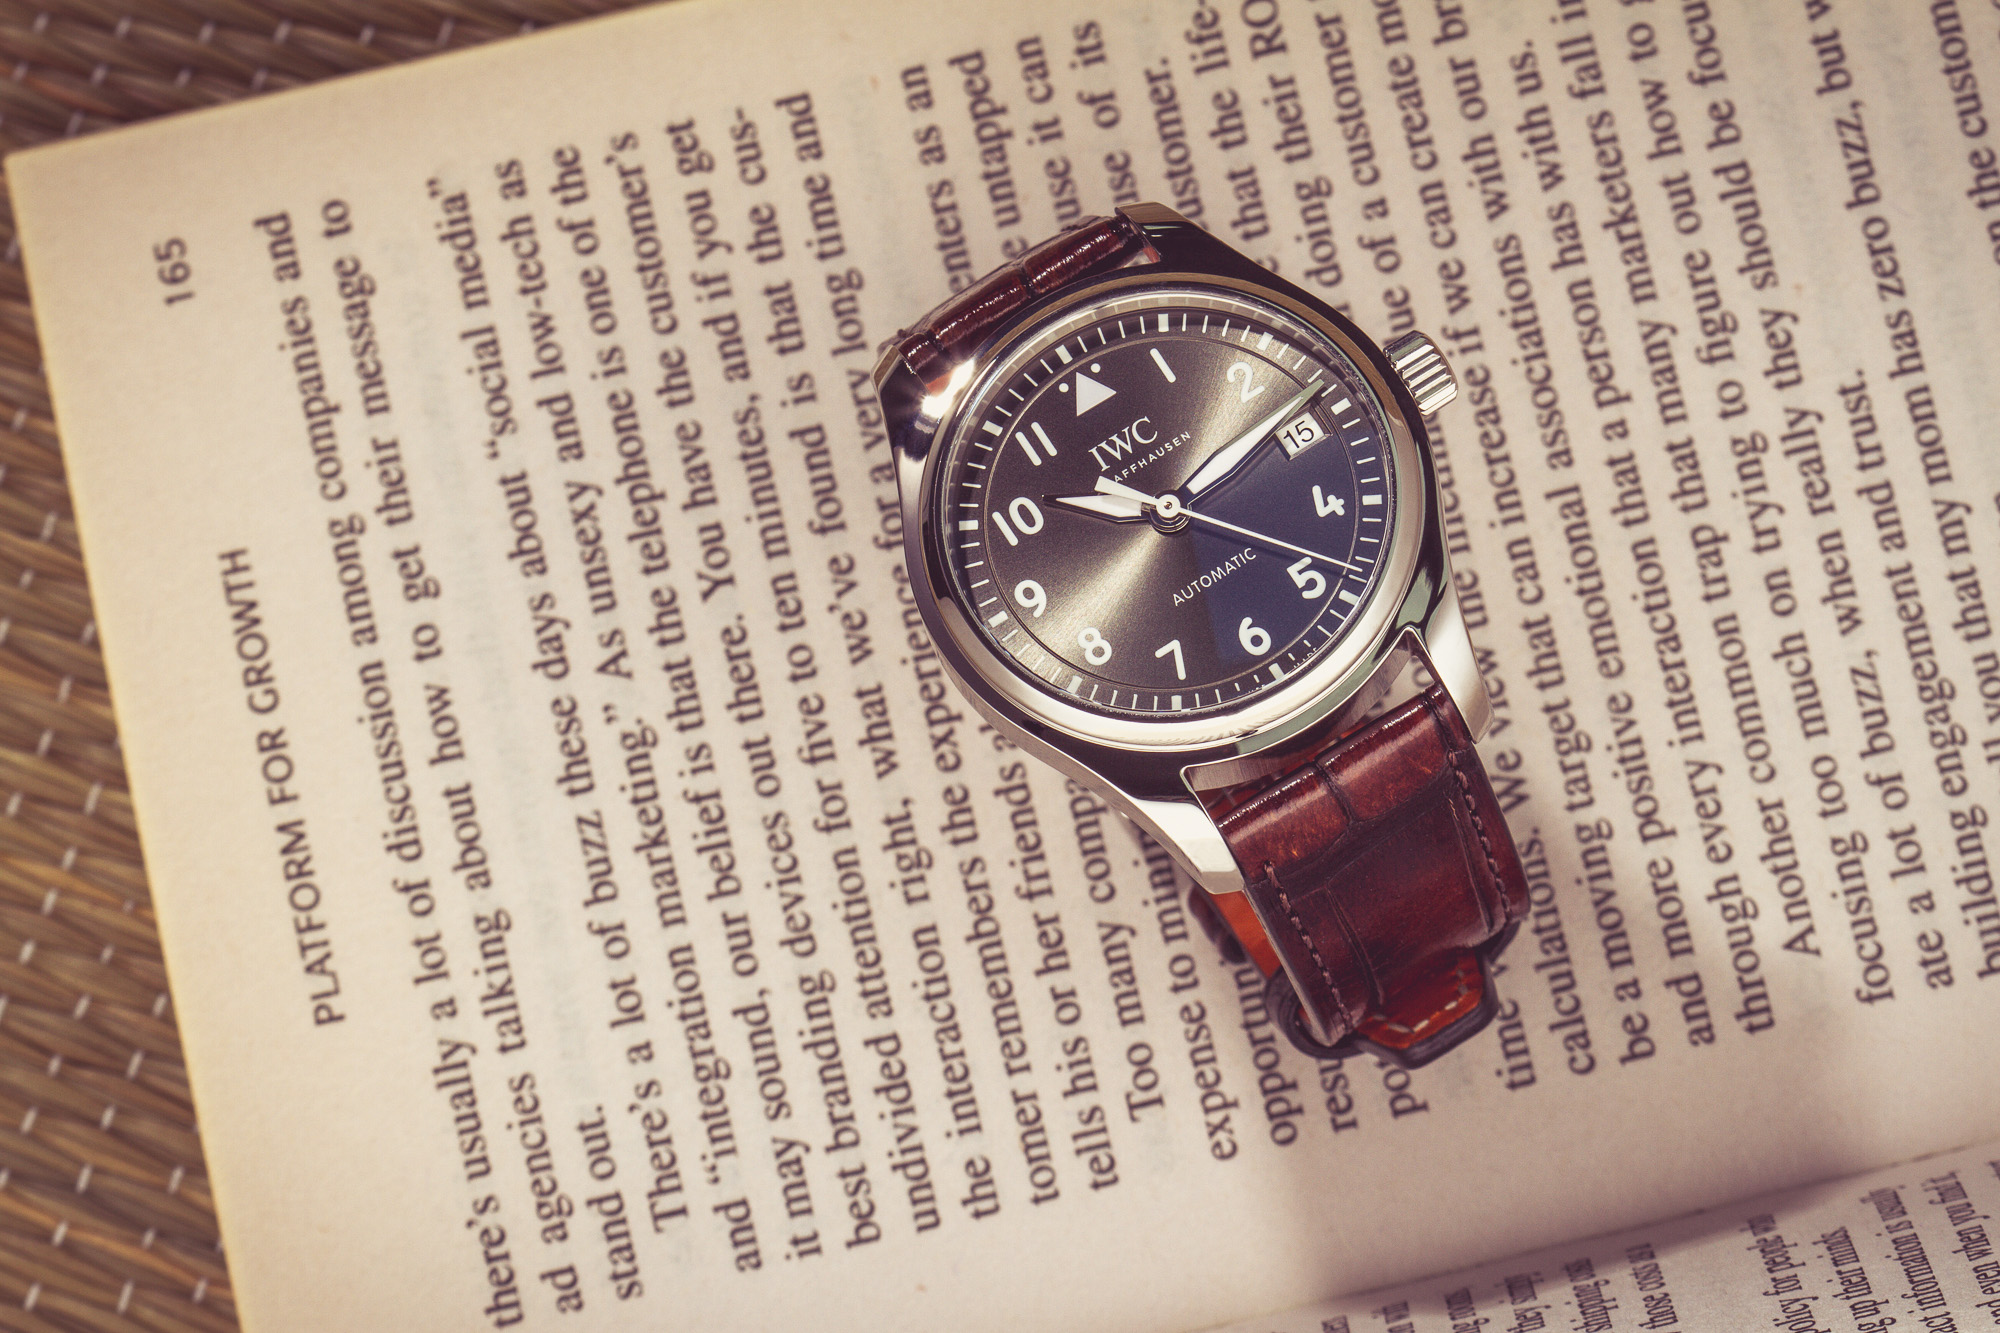 IWC Pilot's 36 review